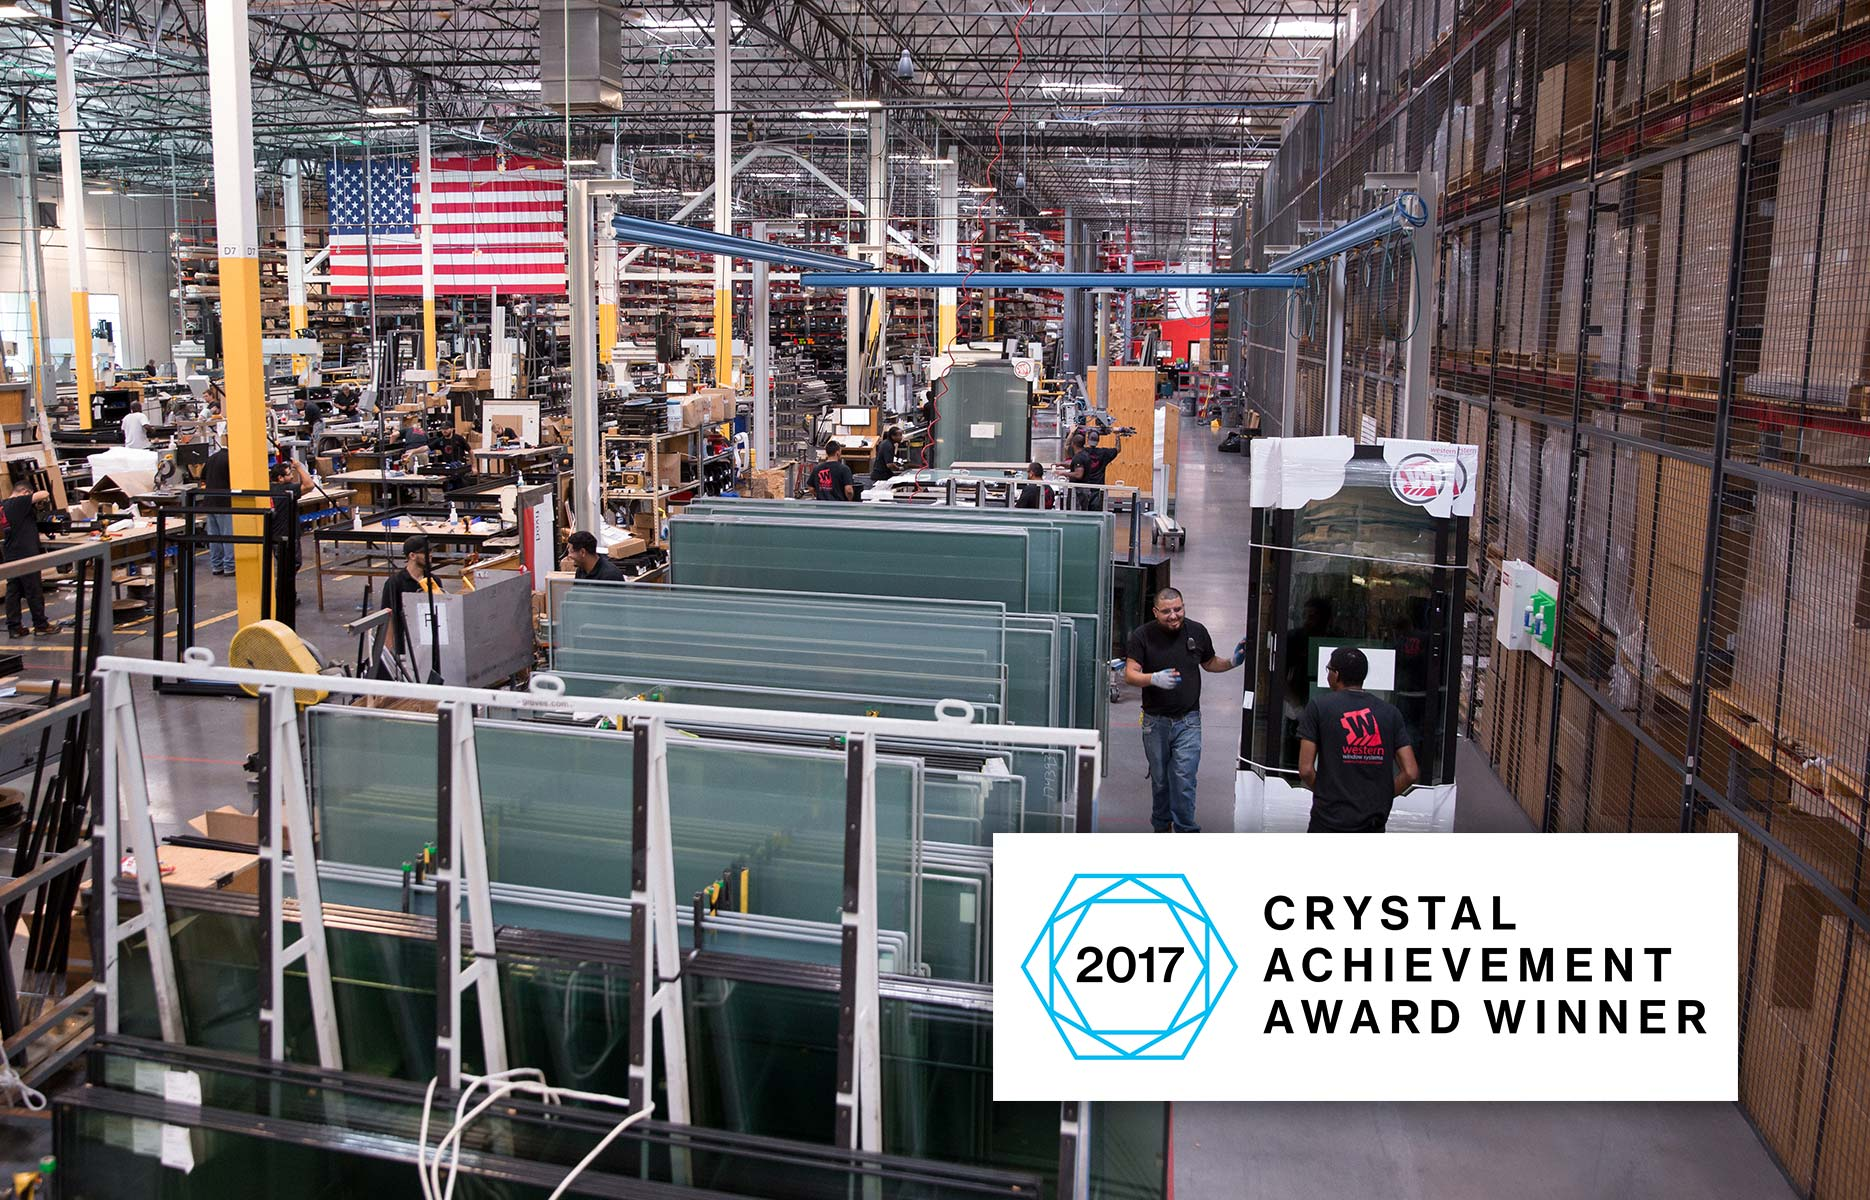 WWS Wins Crystal Achievement Award for Most Innovative Manufacturing Process